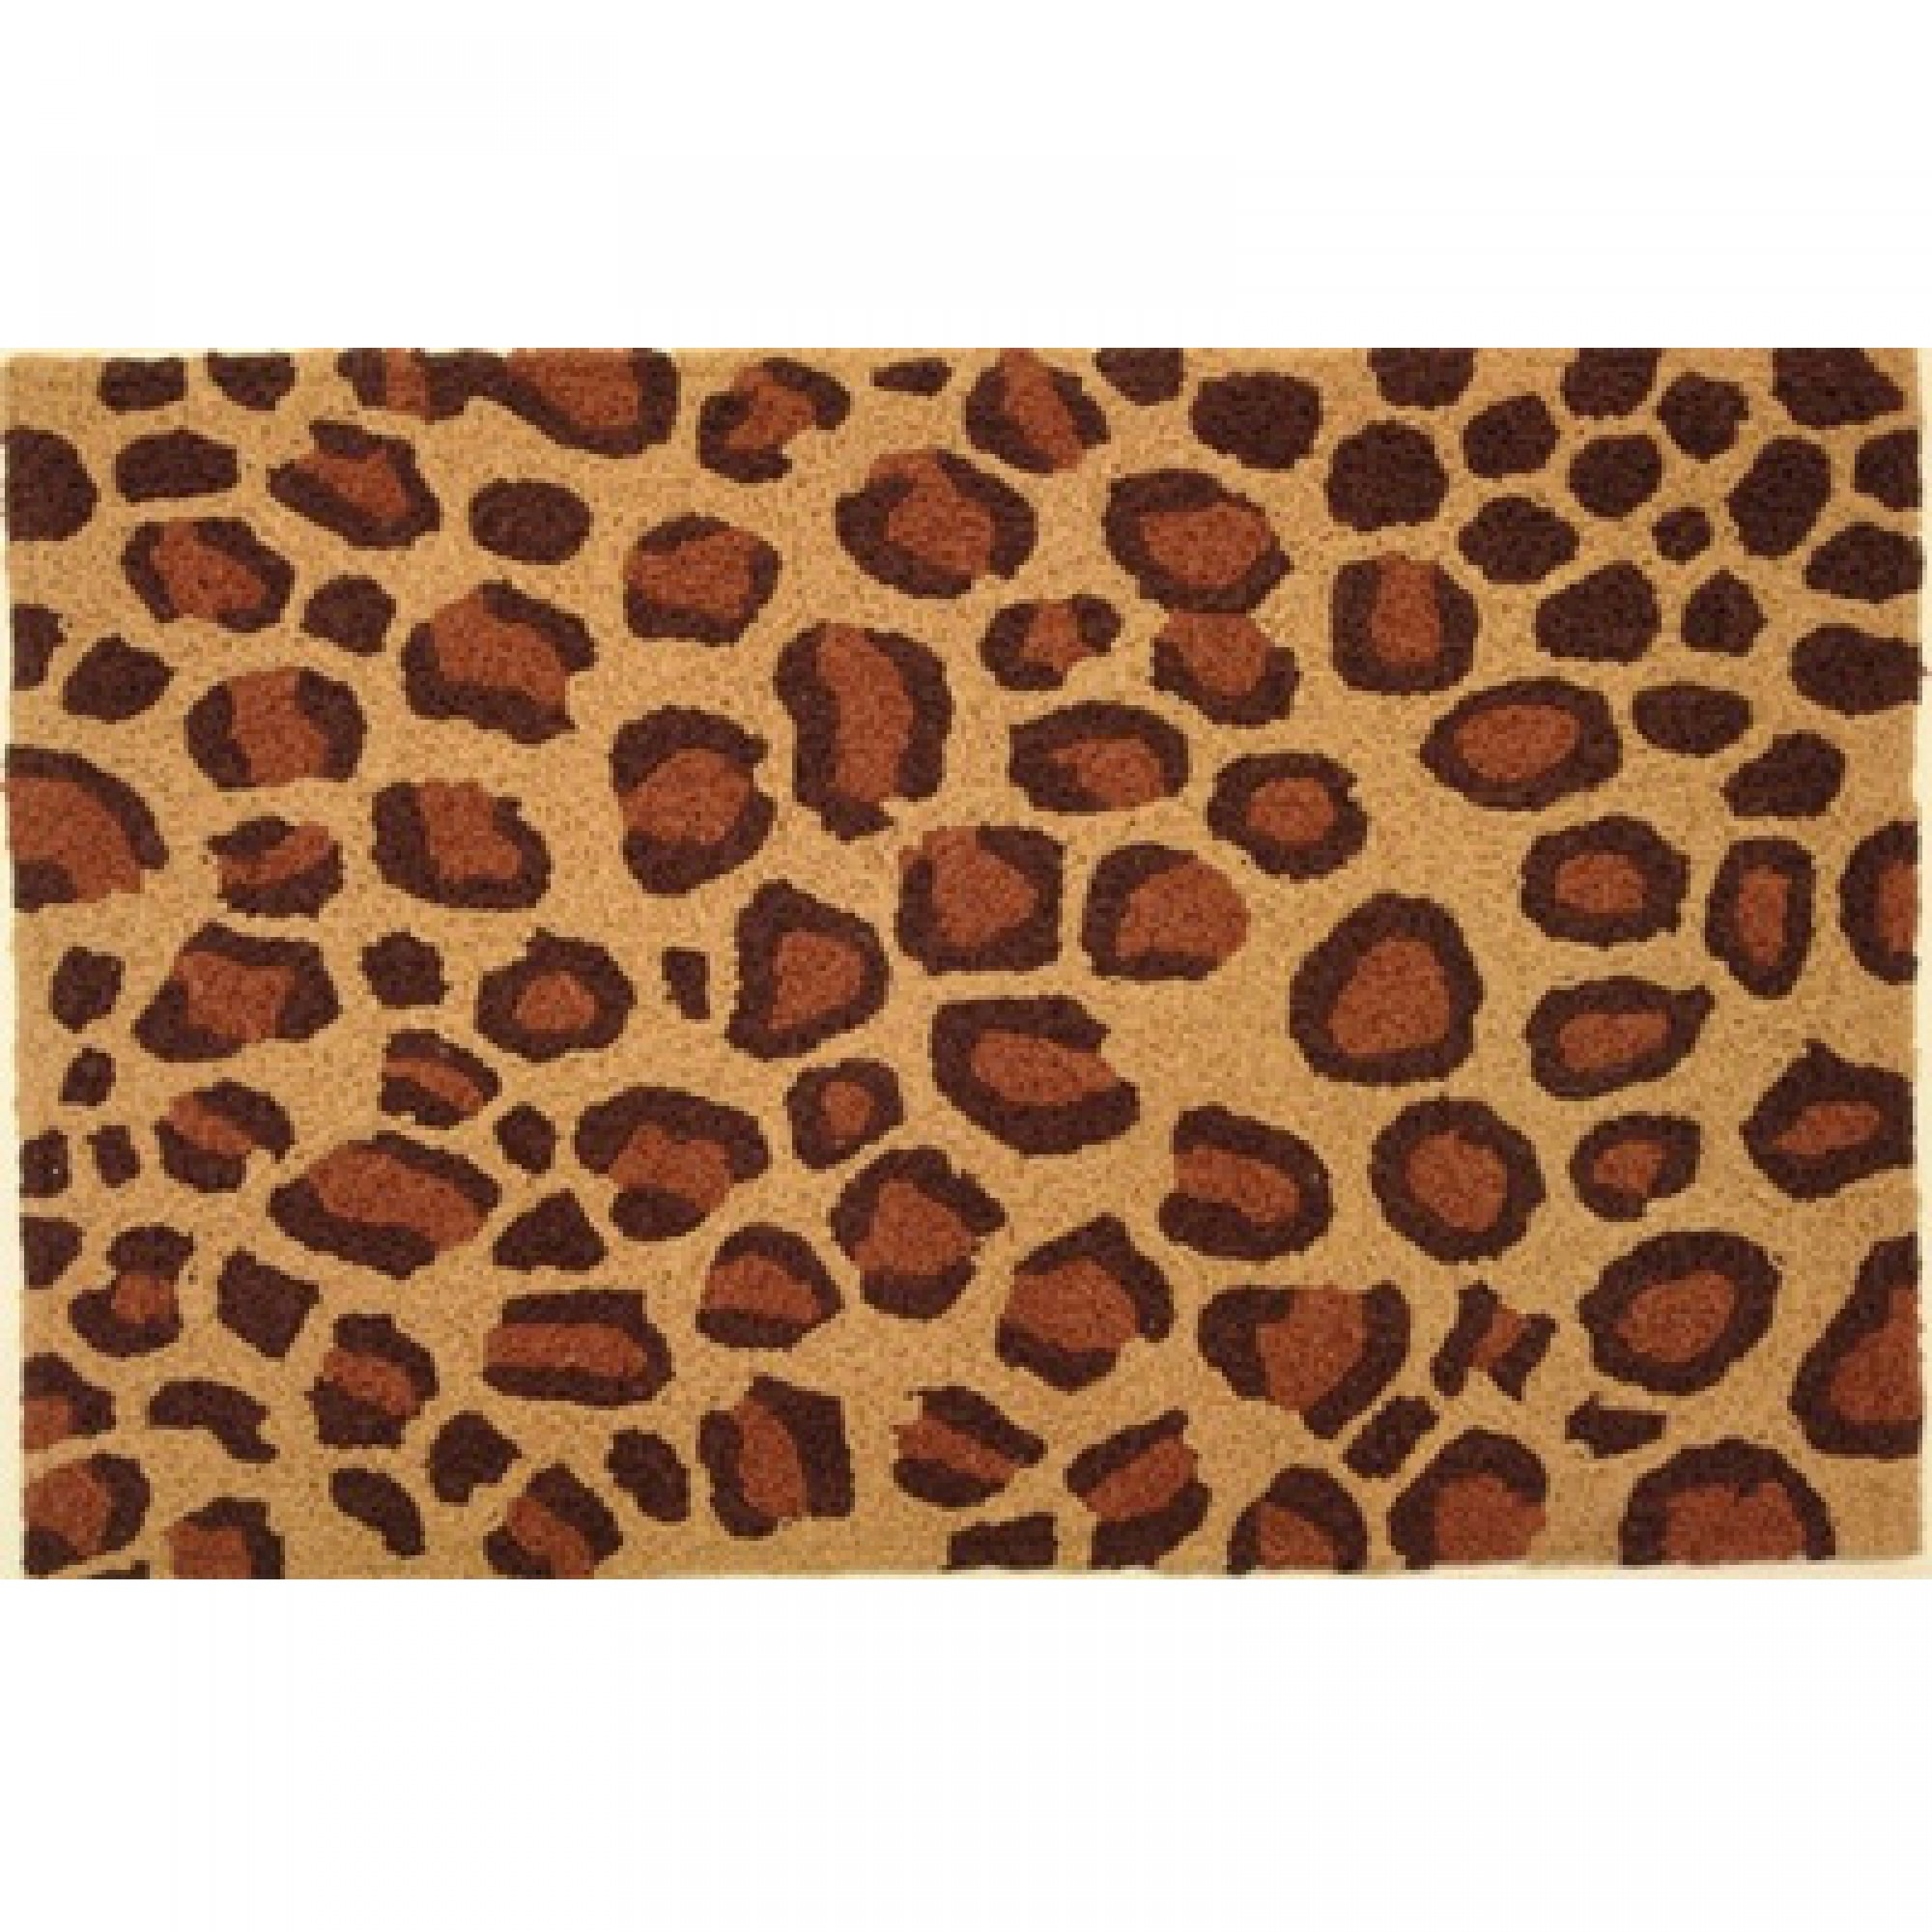 soft thick leopard rug super your product area collage cut kimba breckenridge customize pattern luxury shag size pile collection indoor